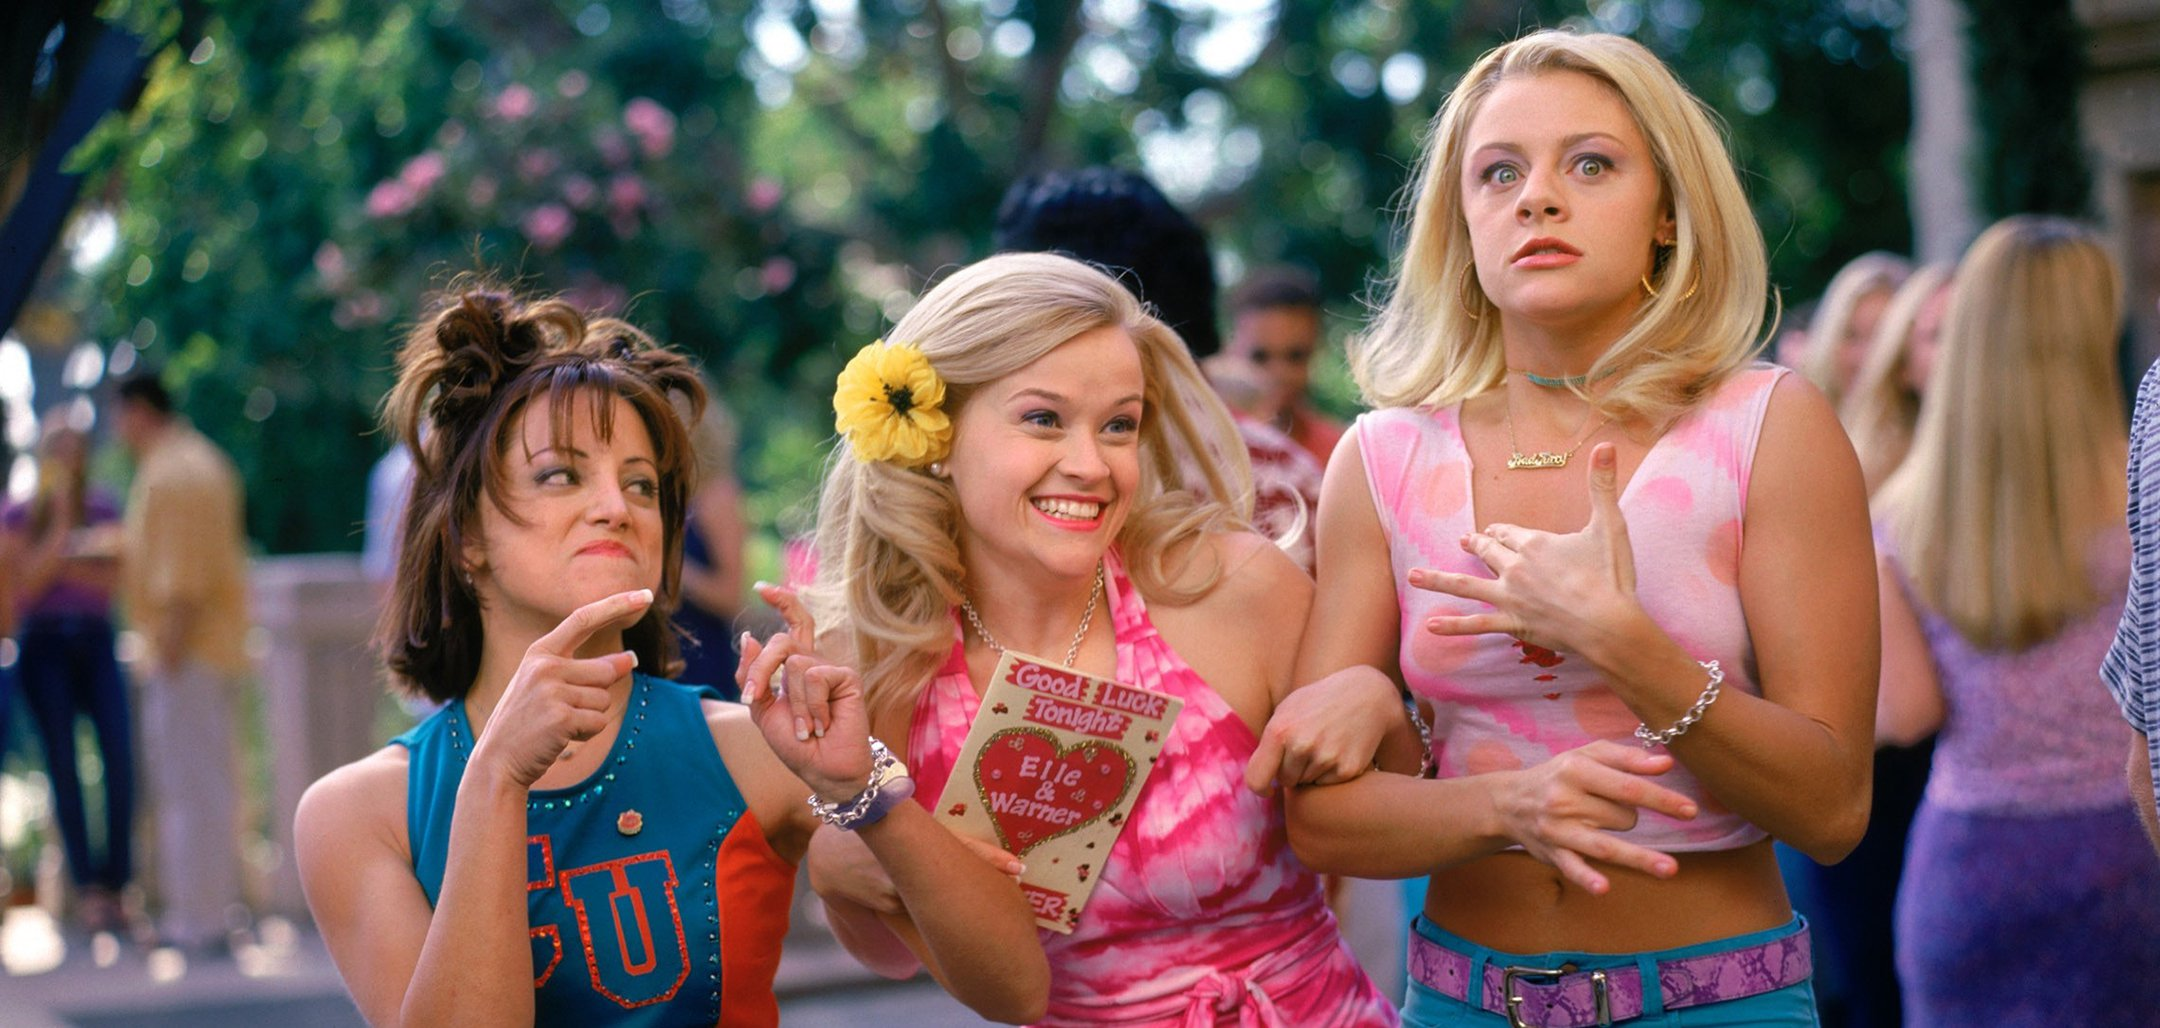 Alanna Ubach, Reece Witherspoon and Jessica Cauffiel in a still from Legally Blonde (2001)